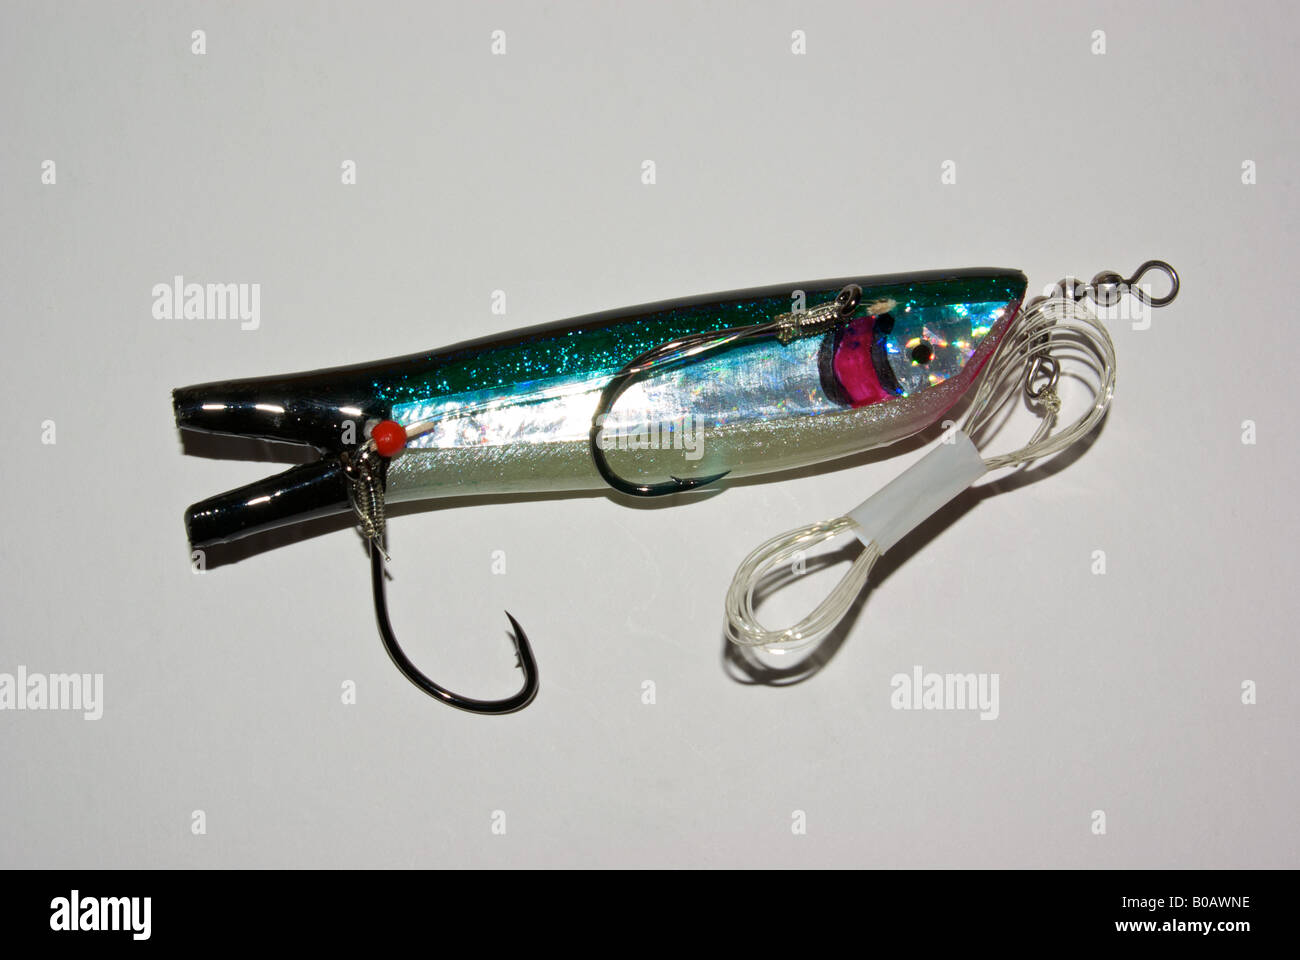 True Roll Trolling Fishing Lure Attracts Salmon Bottom